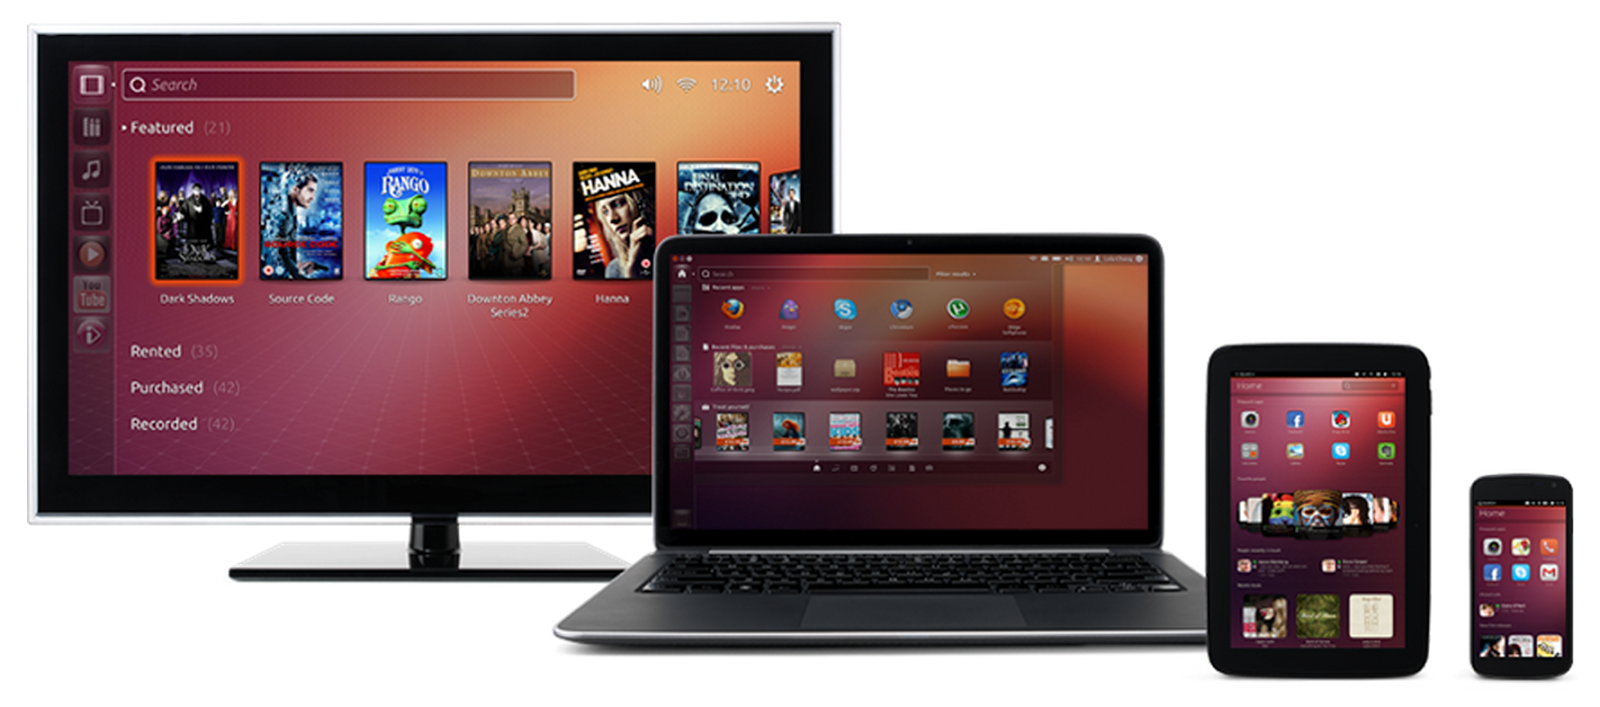 ubuntu4screens